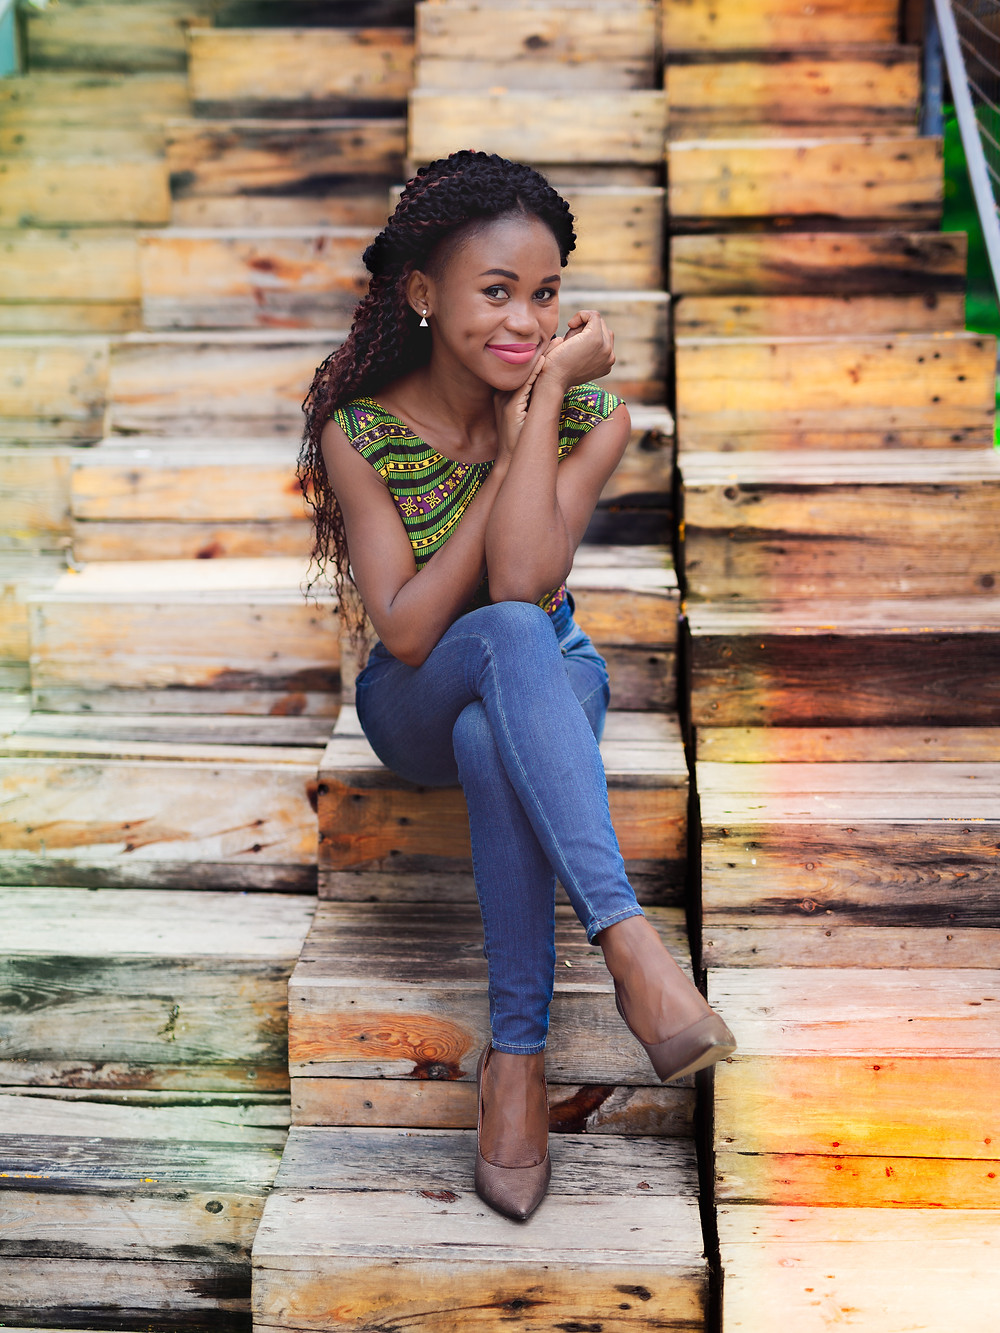 stylish woman wearing perfect jeans and heels sitting down